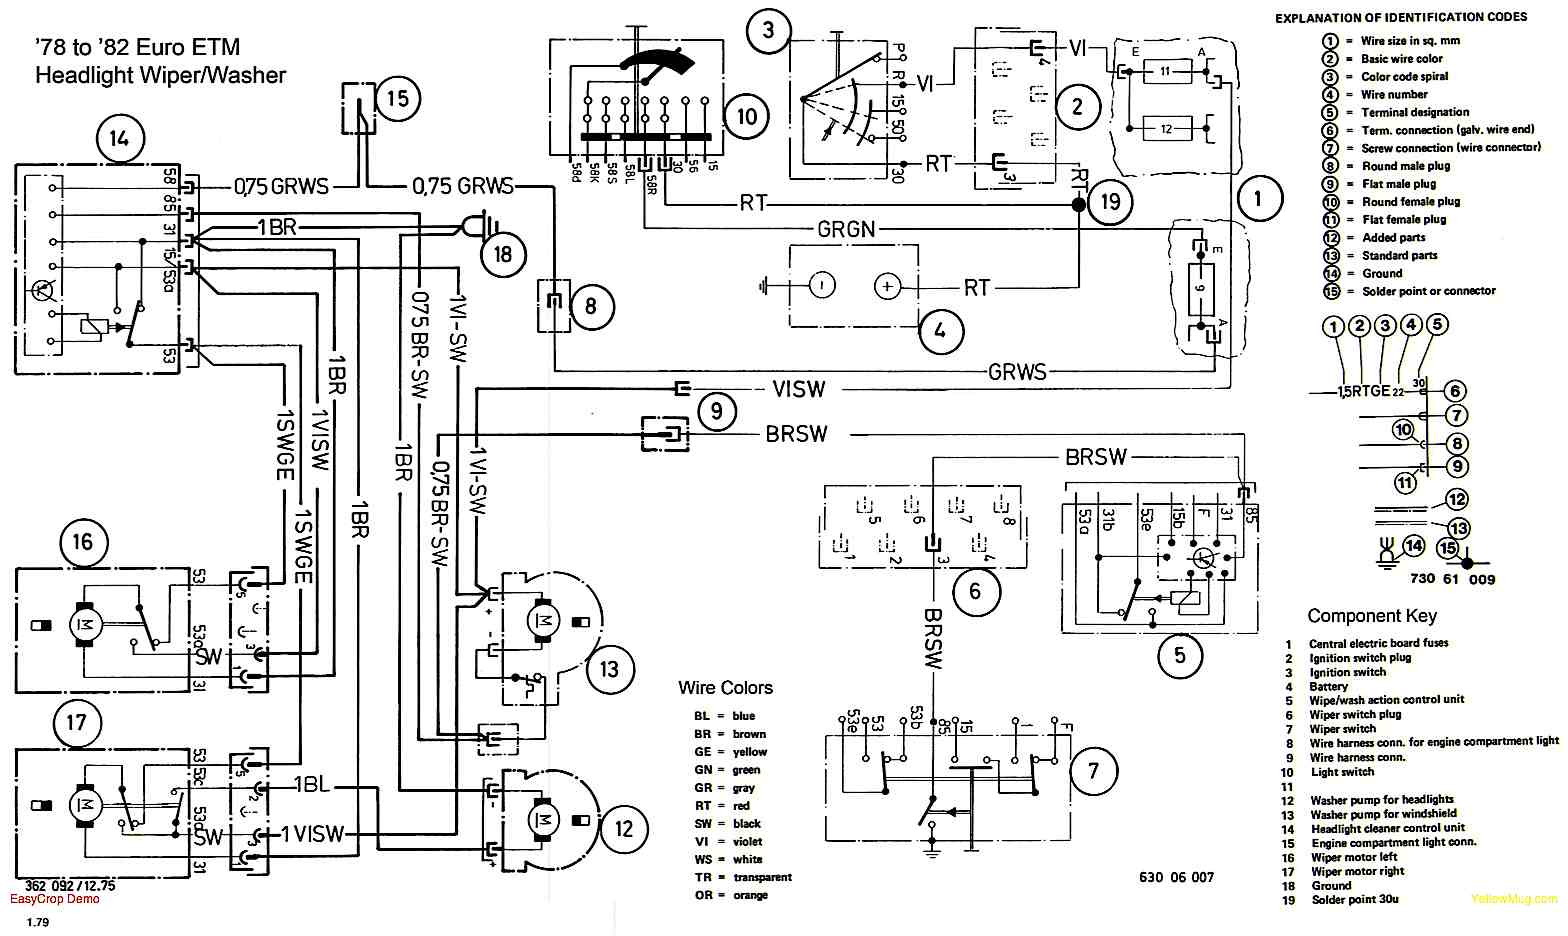 headlight_cleaners_composit_719 bmw wiring diagram e30 bmw wiring diagrams instruction bmw e39 headlight wiring diagram at crackthecode.co